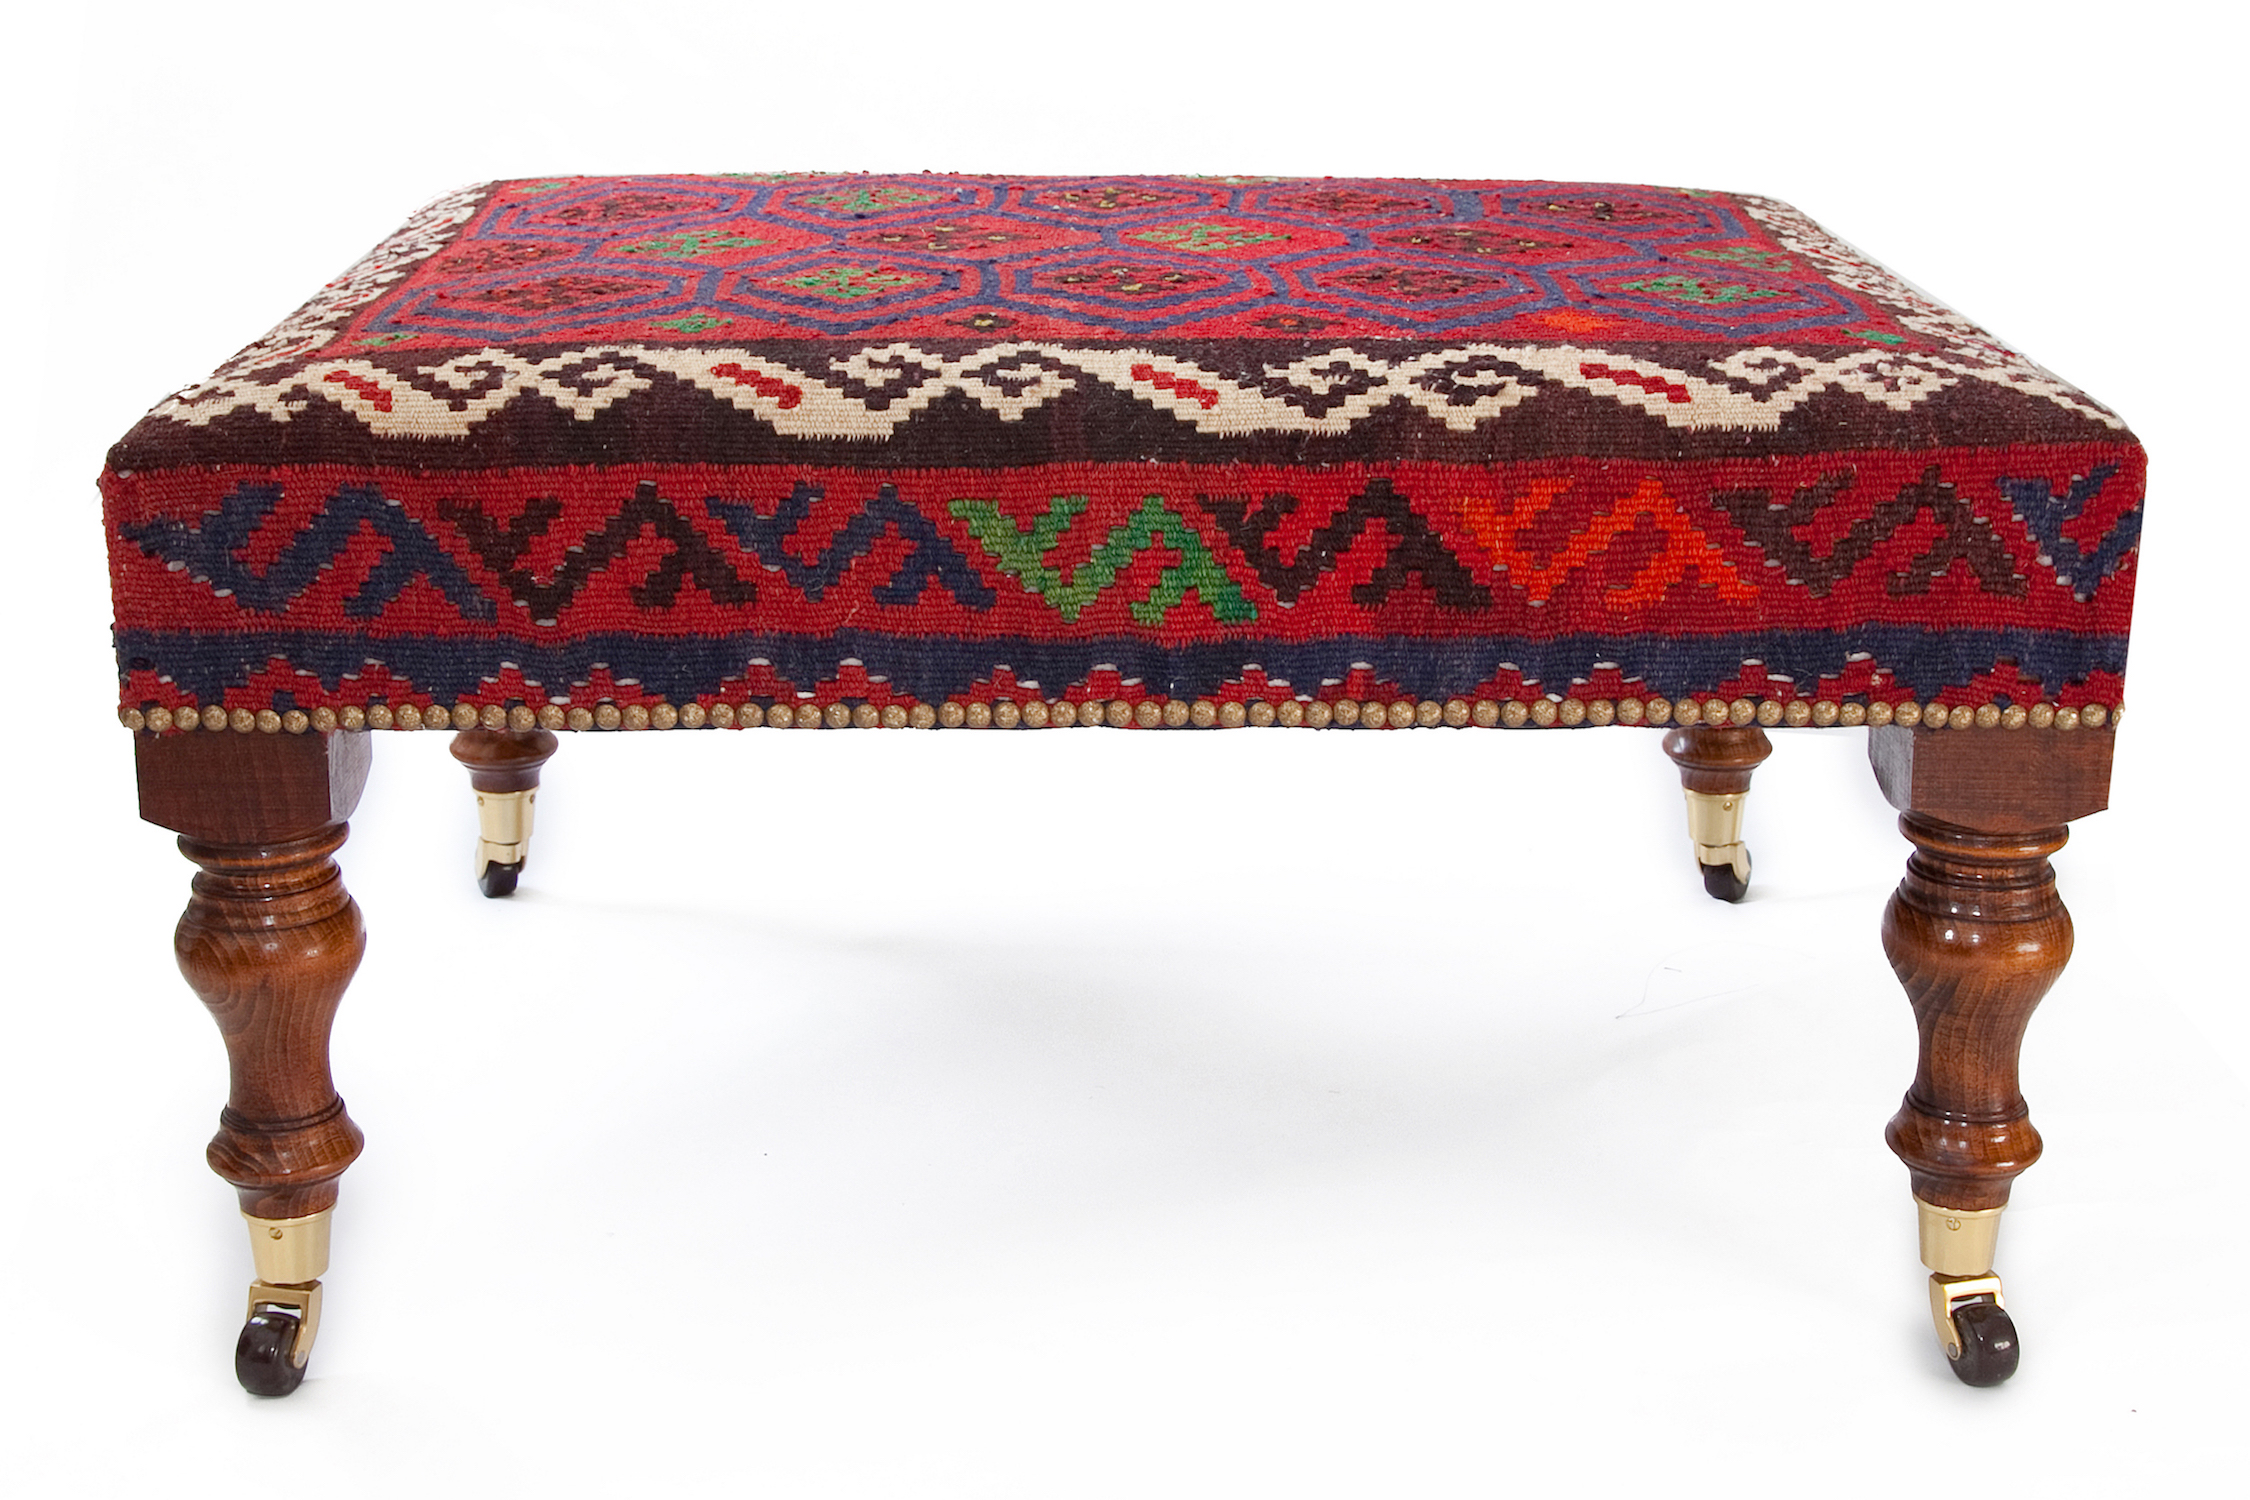 Kilim  Footstool with Speckled Gold Studs and Turned legs with Castors.